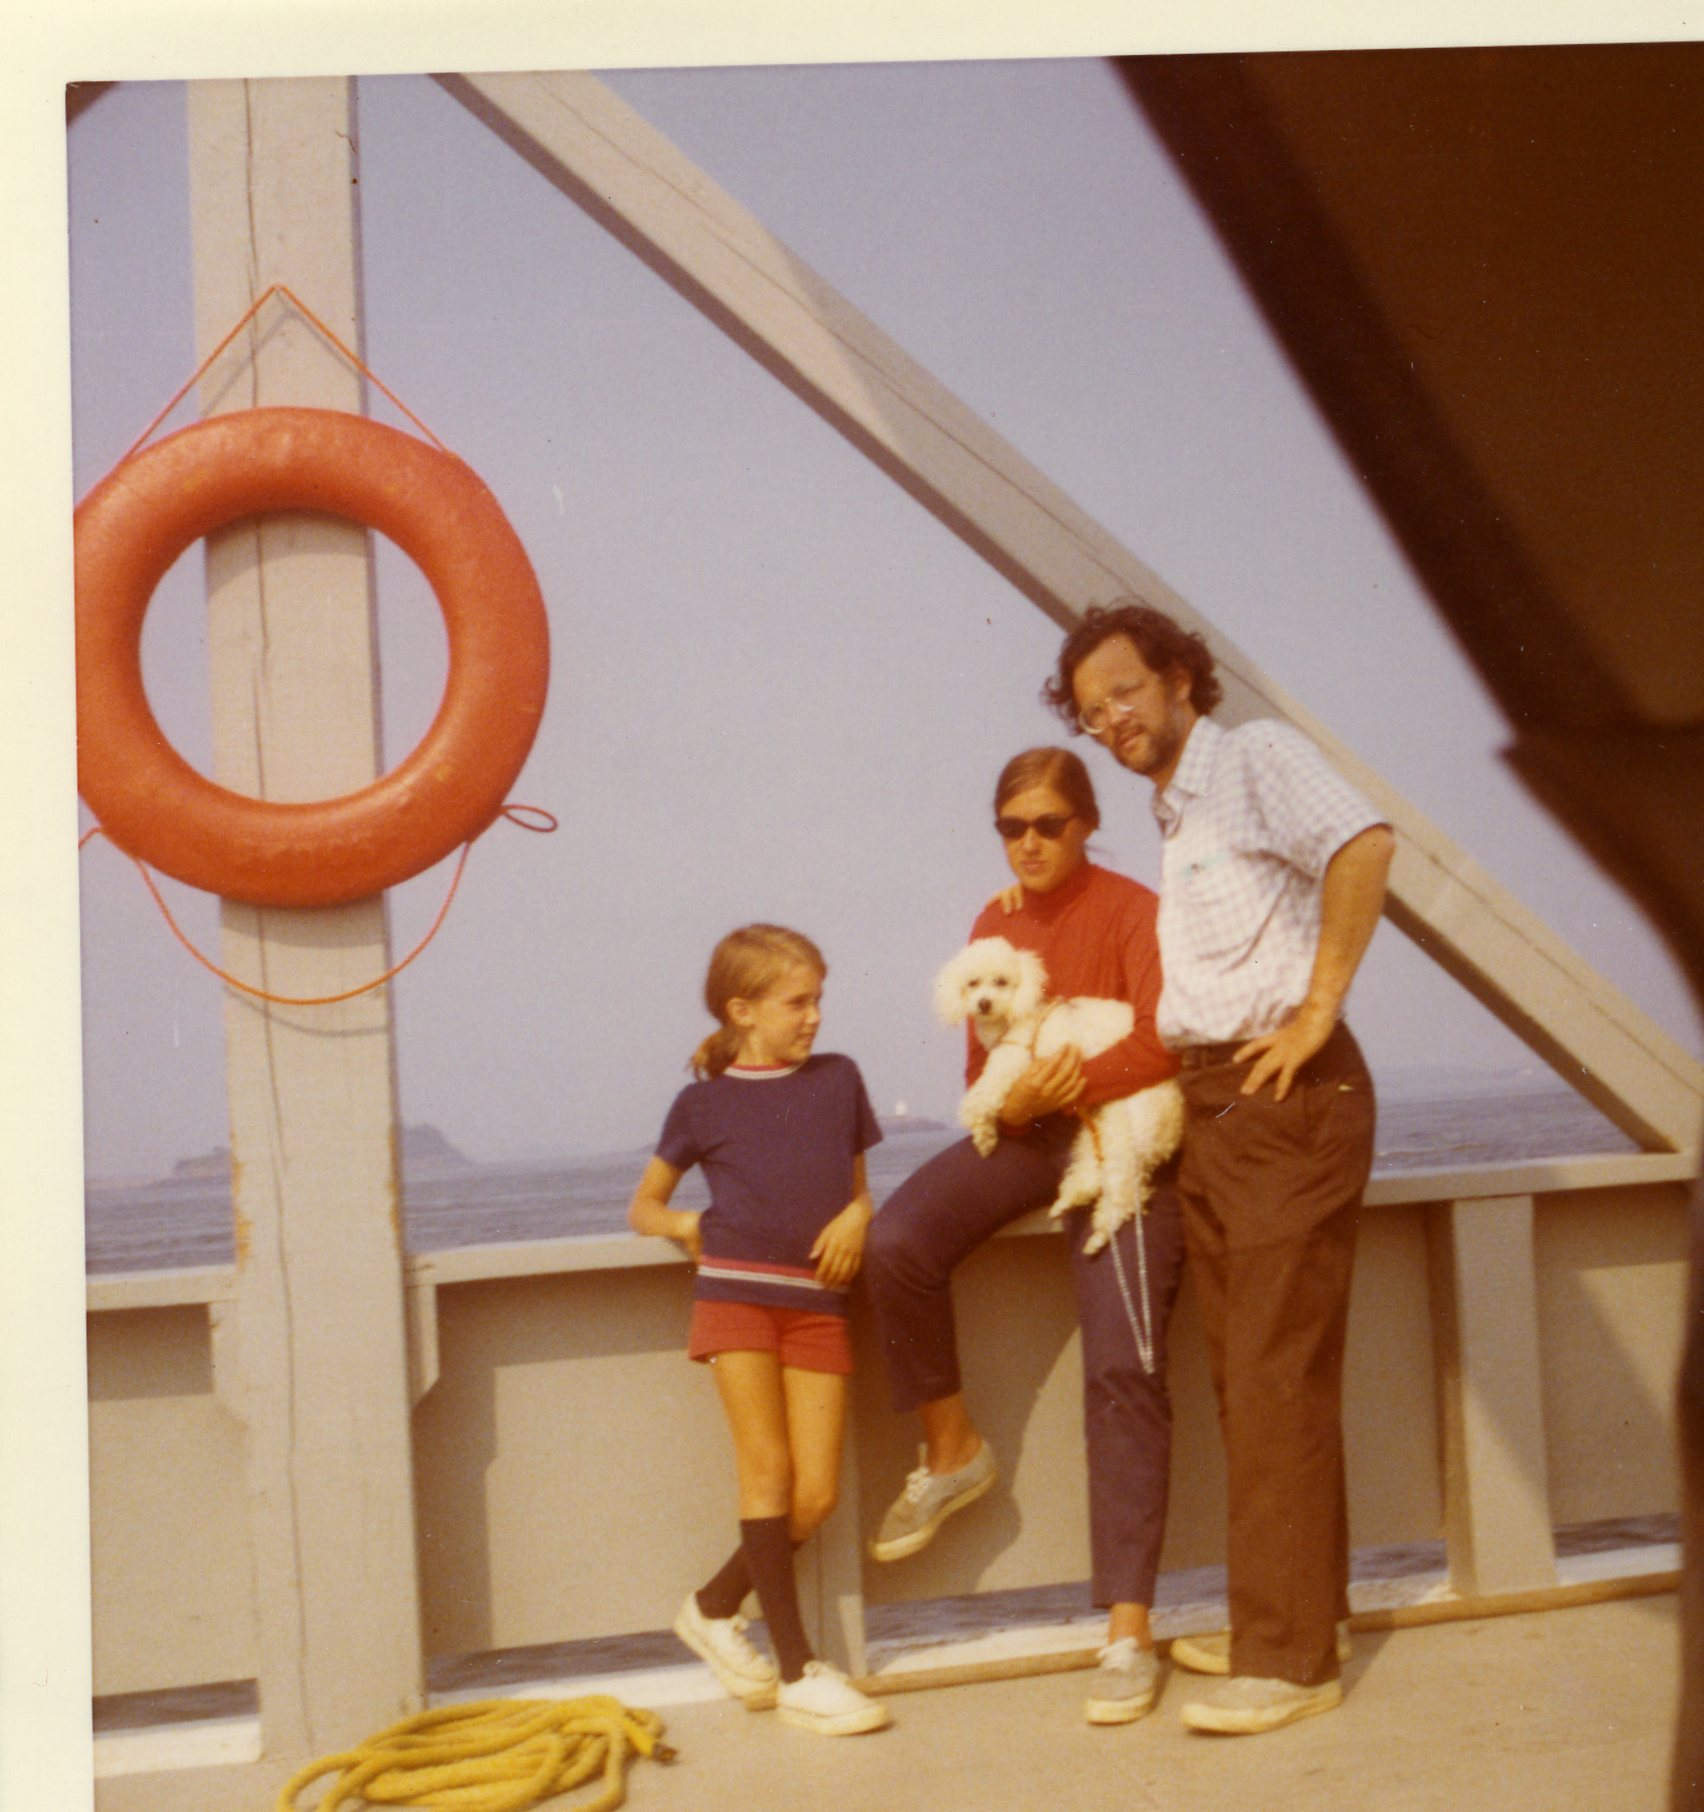 Image: three white people and a dog pose on the side of a boat: girl with ponytail wearing a blue t-shirt and red shorts; woman in red shirt and sunglasses; man with curly brown hair and beard in shortsleeve shirt and brown pants.